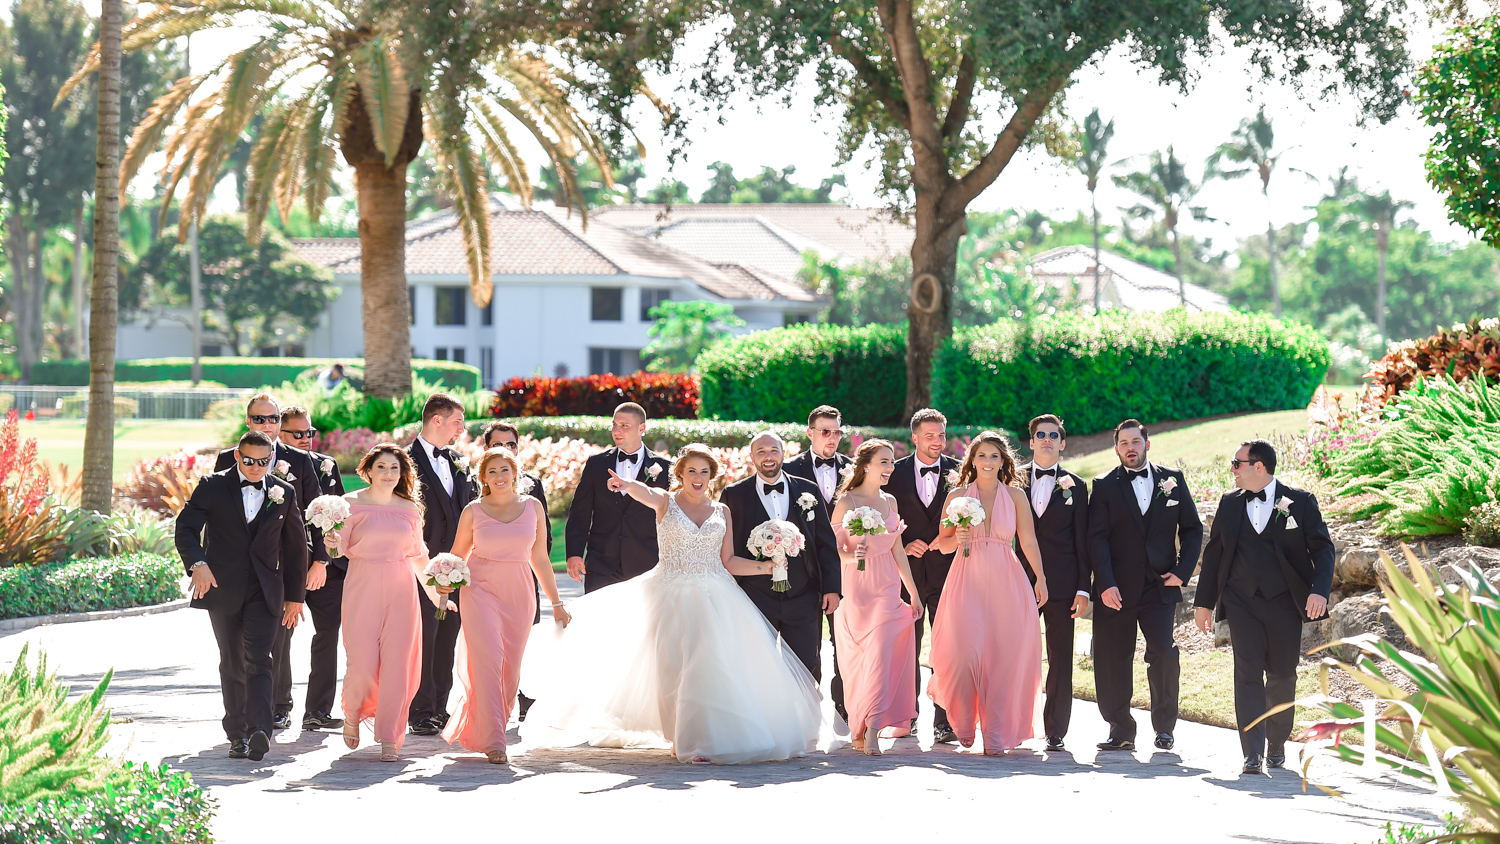 Fun bridal party at Romantic Outdoors Wedding at Woodfield Country Club in Boca Raton, Florida by Domino Arts Photography